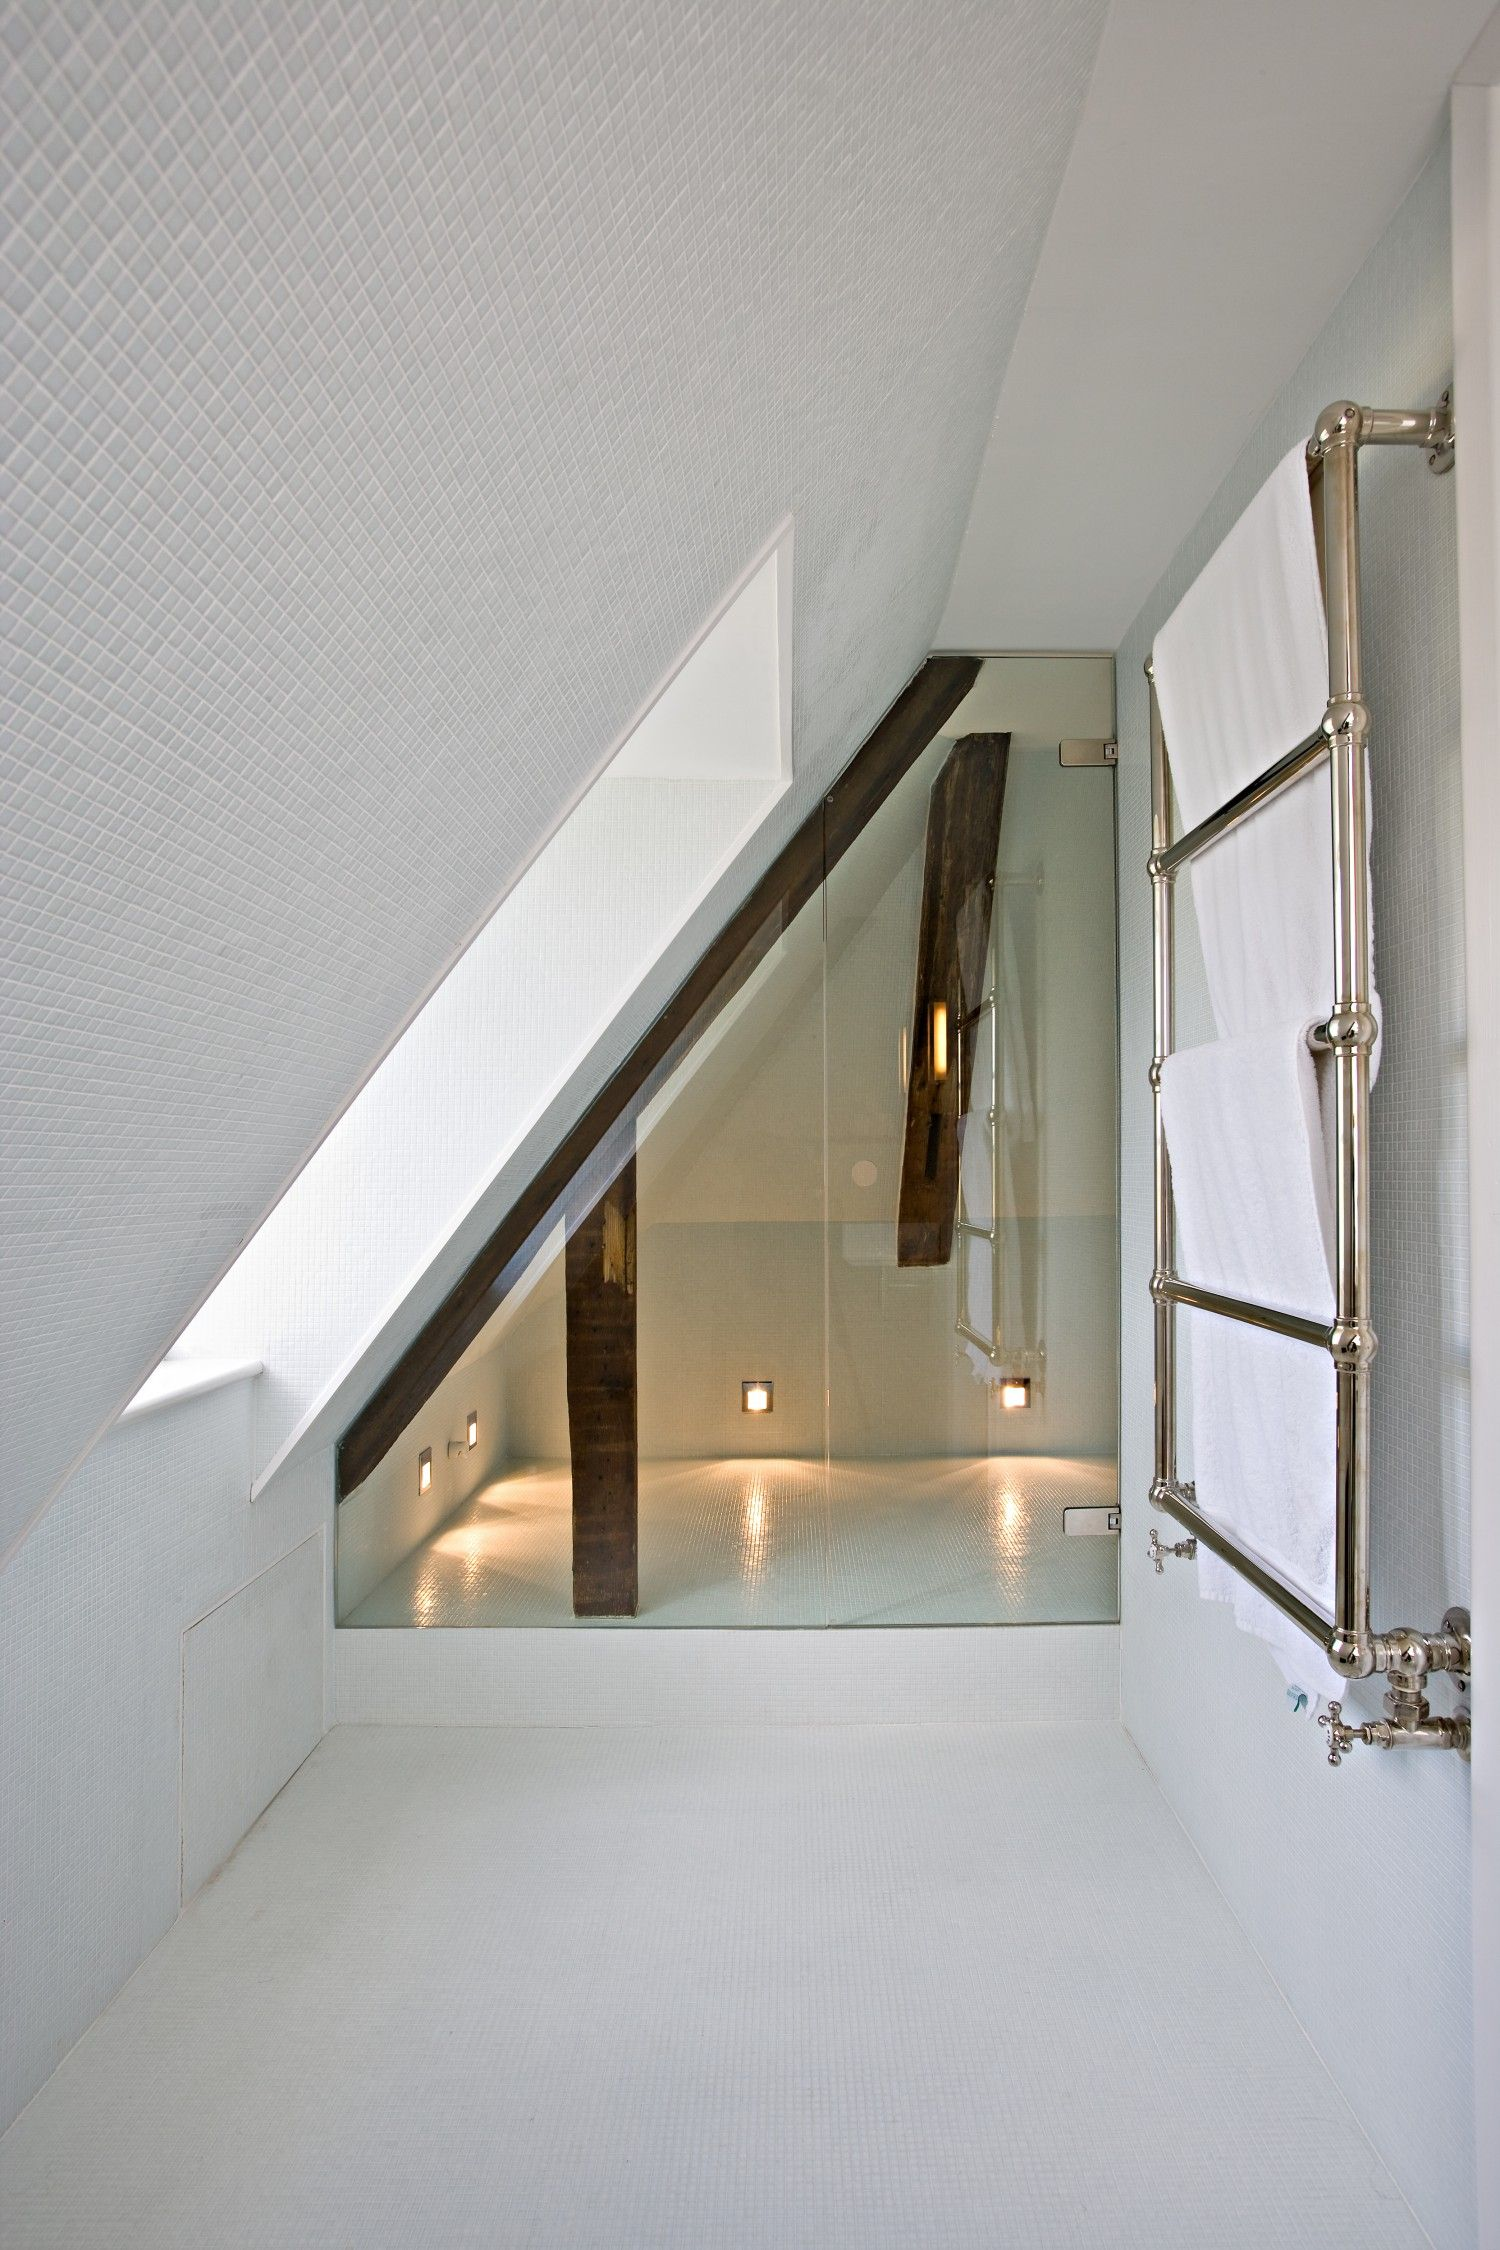 Win Badkamer Glass Shower Sceen Slanted For Attic Ceiling Amazing